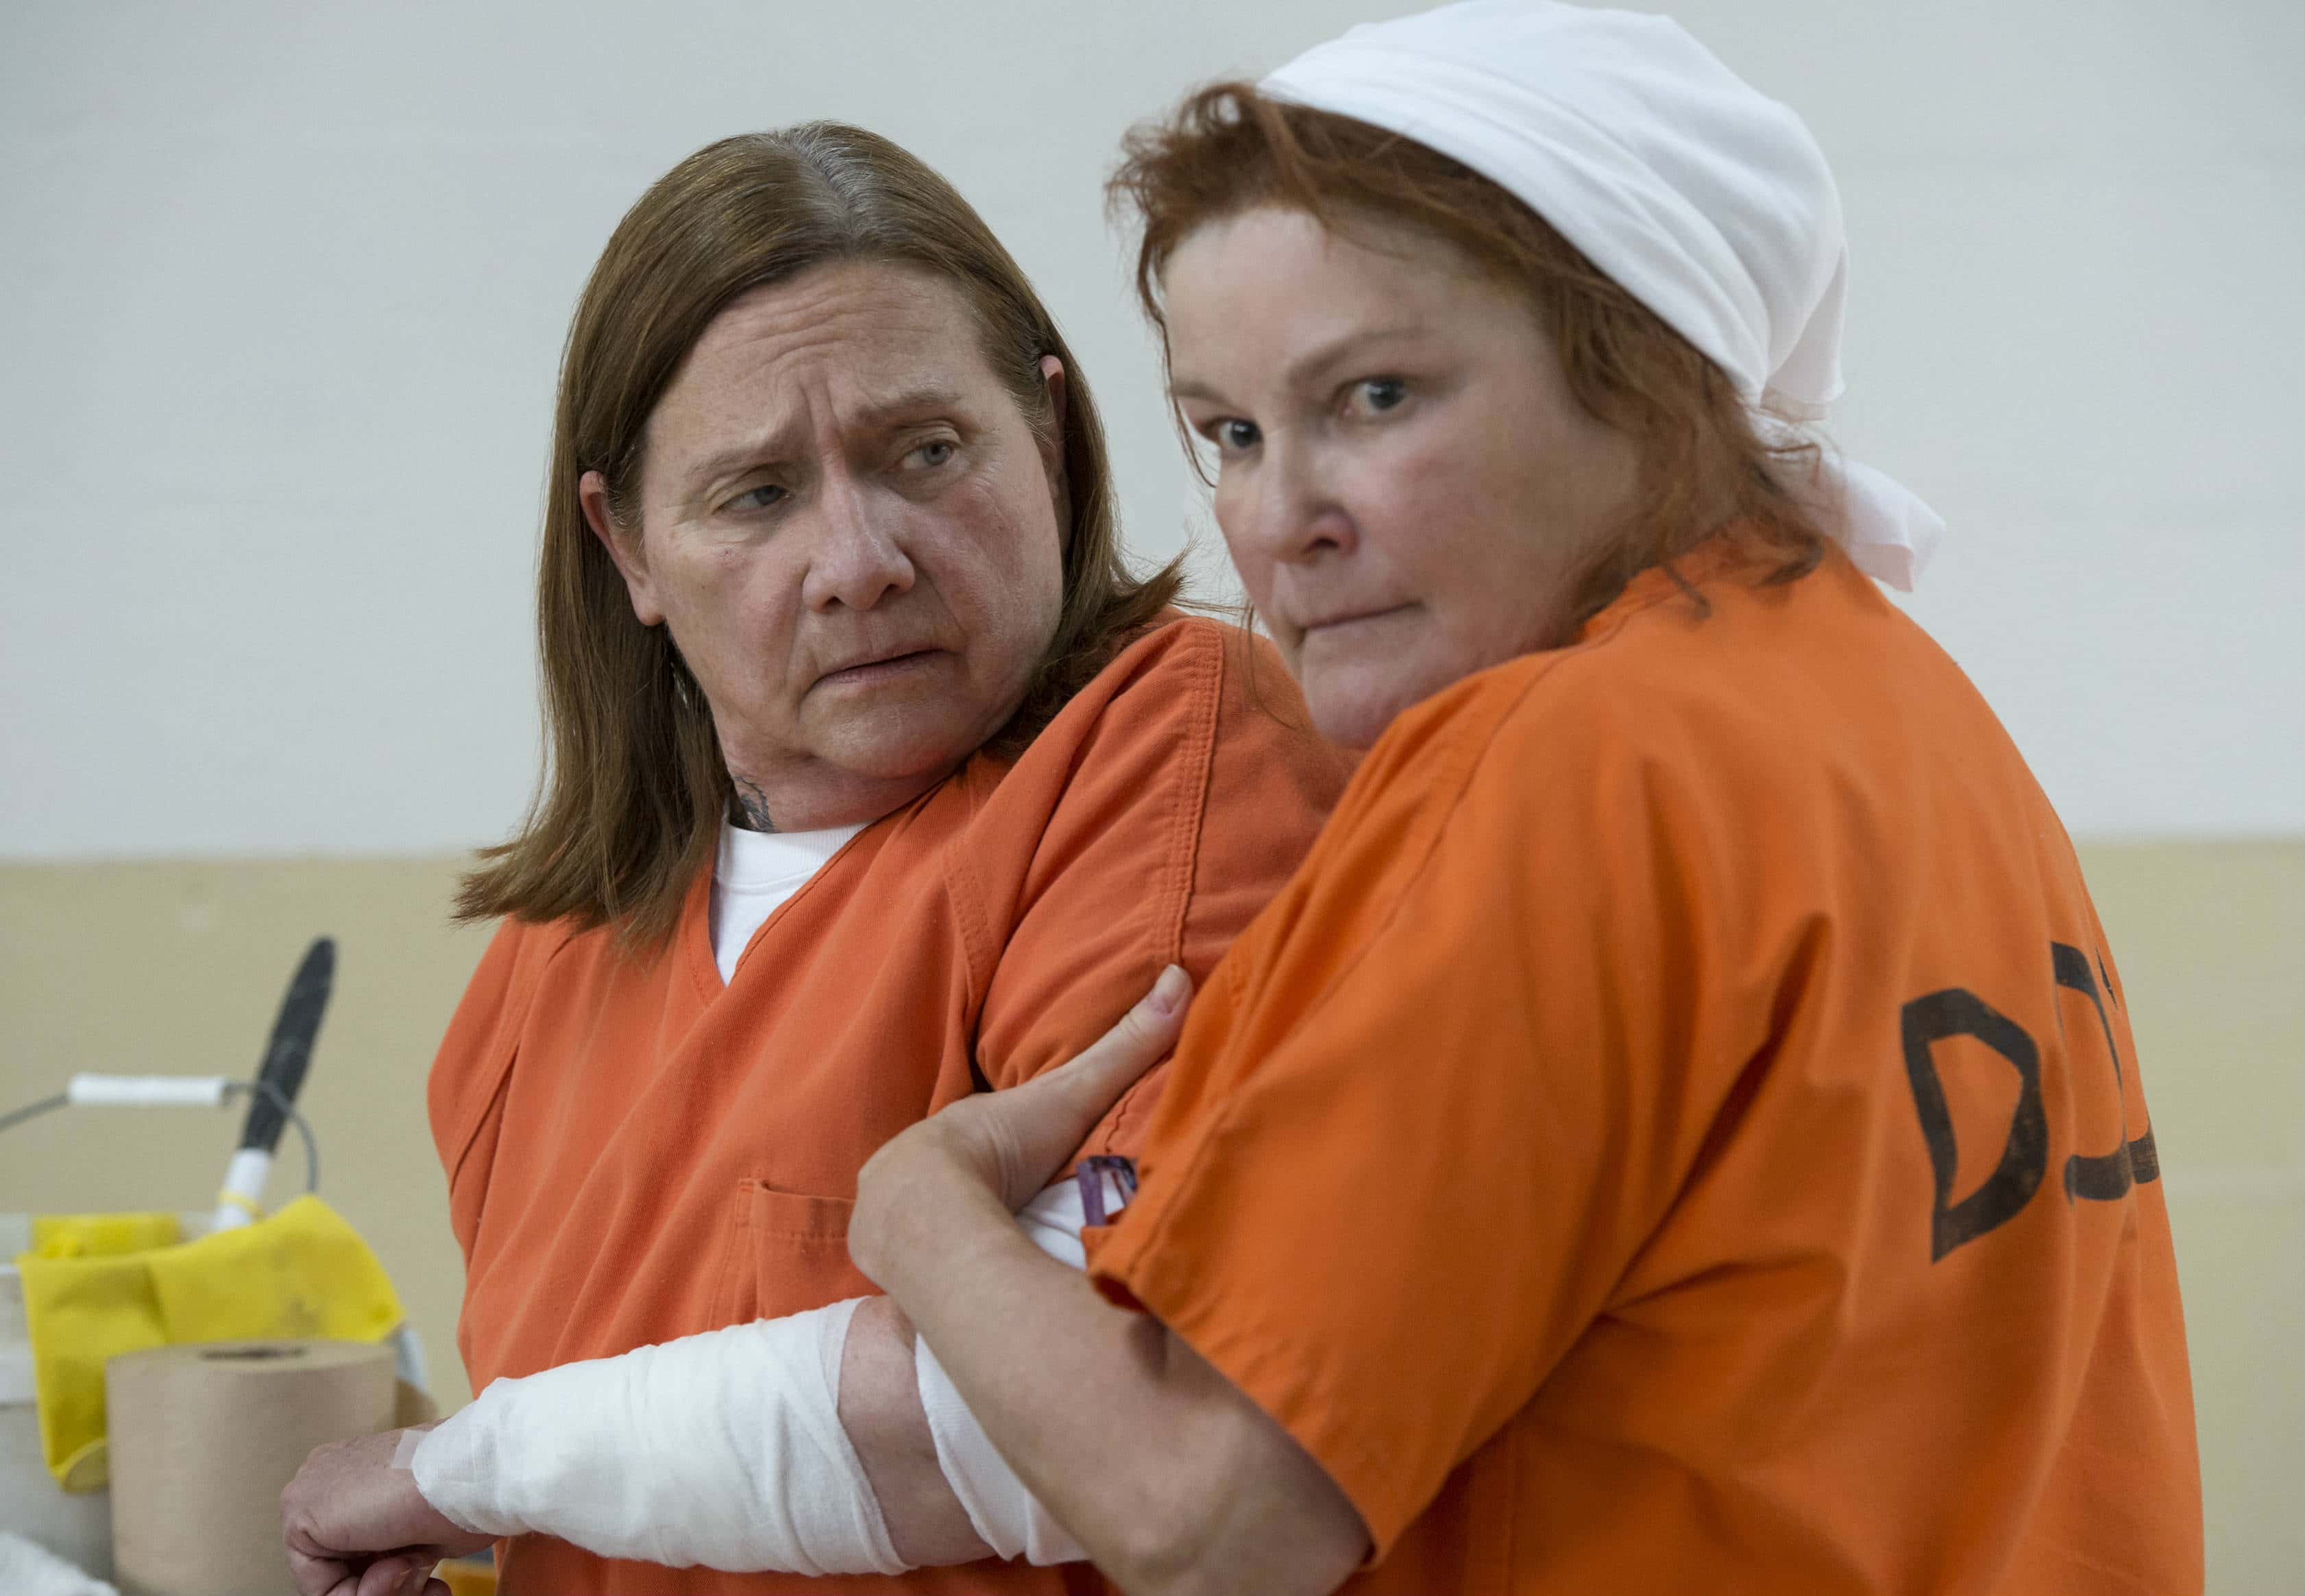 It might not be visible to viewers at first glance, but it looks like the show is opening up a vacancy in the prison mom department since Red is now in a mood for revenge after what Freida did to her. (Source: Netflix)